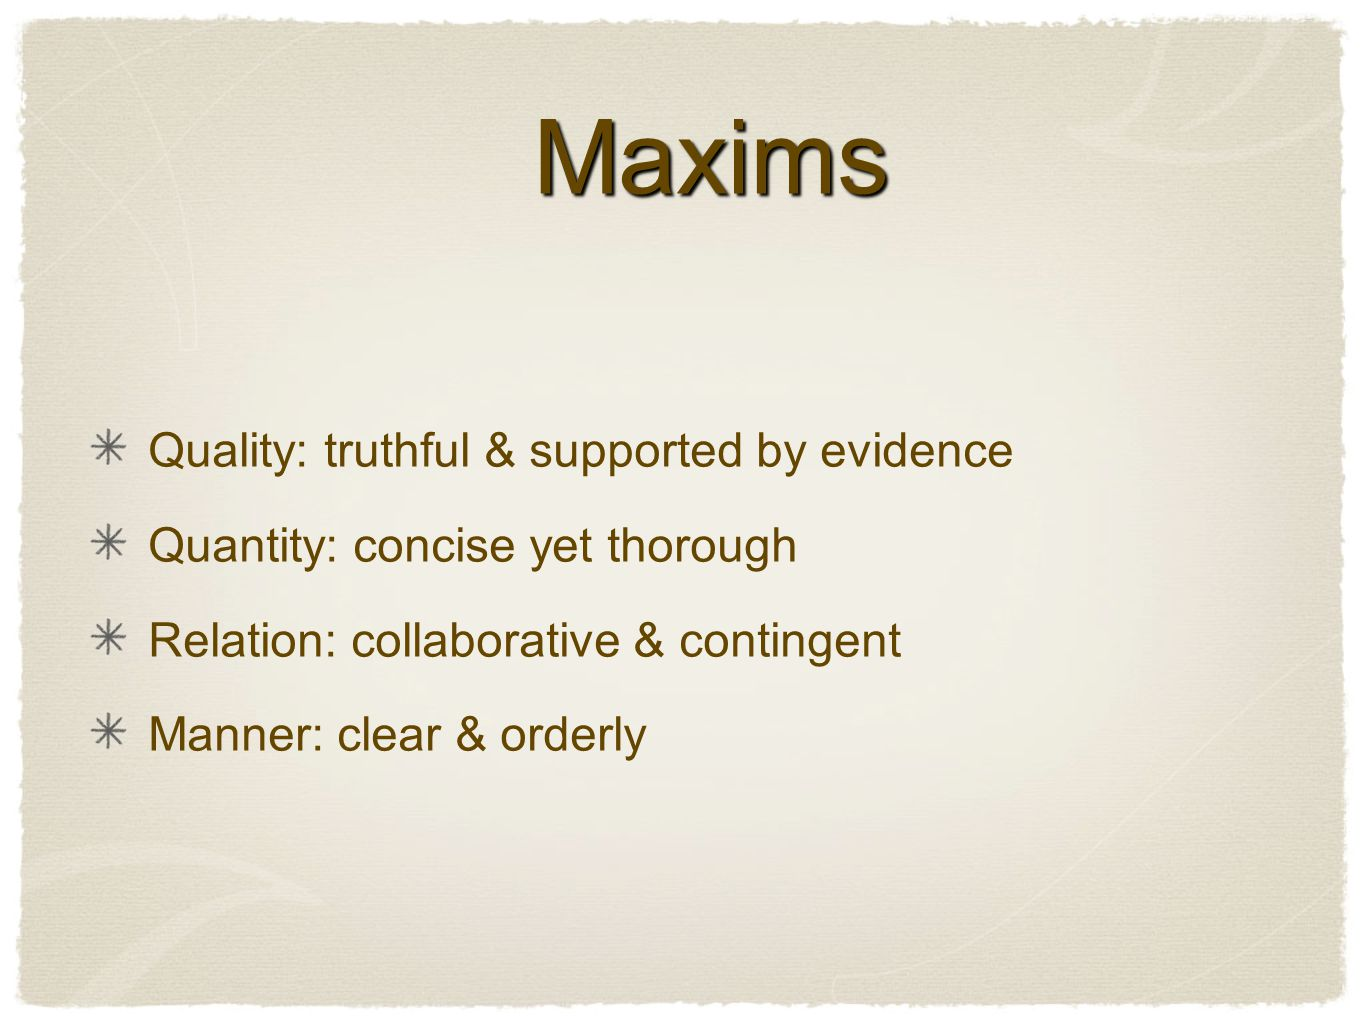 Maxims Maxims Quality: truthful & supported by evidence Quantity: concise yet thorough Relation: collaborative & contingent Manner: clear & orderly